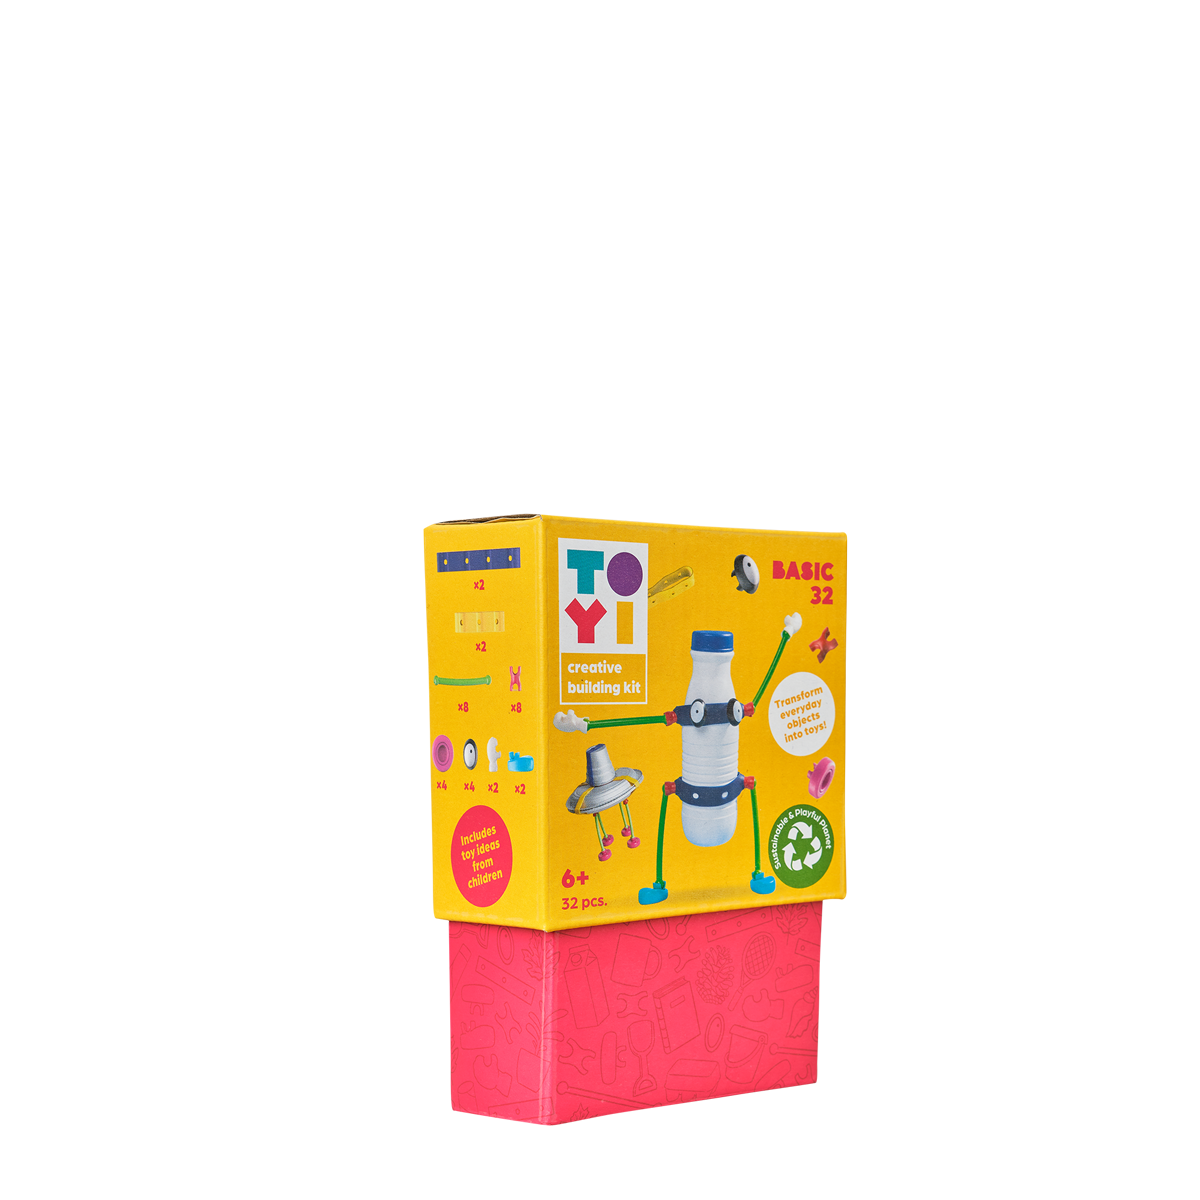 https://toyi.io/wp-content/uploads/2021/05/toyi-32-transparent.png